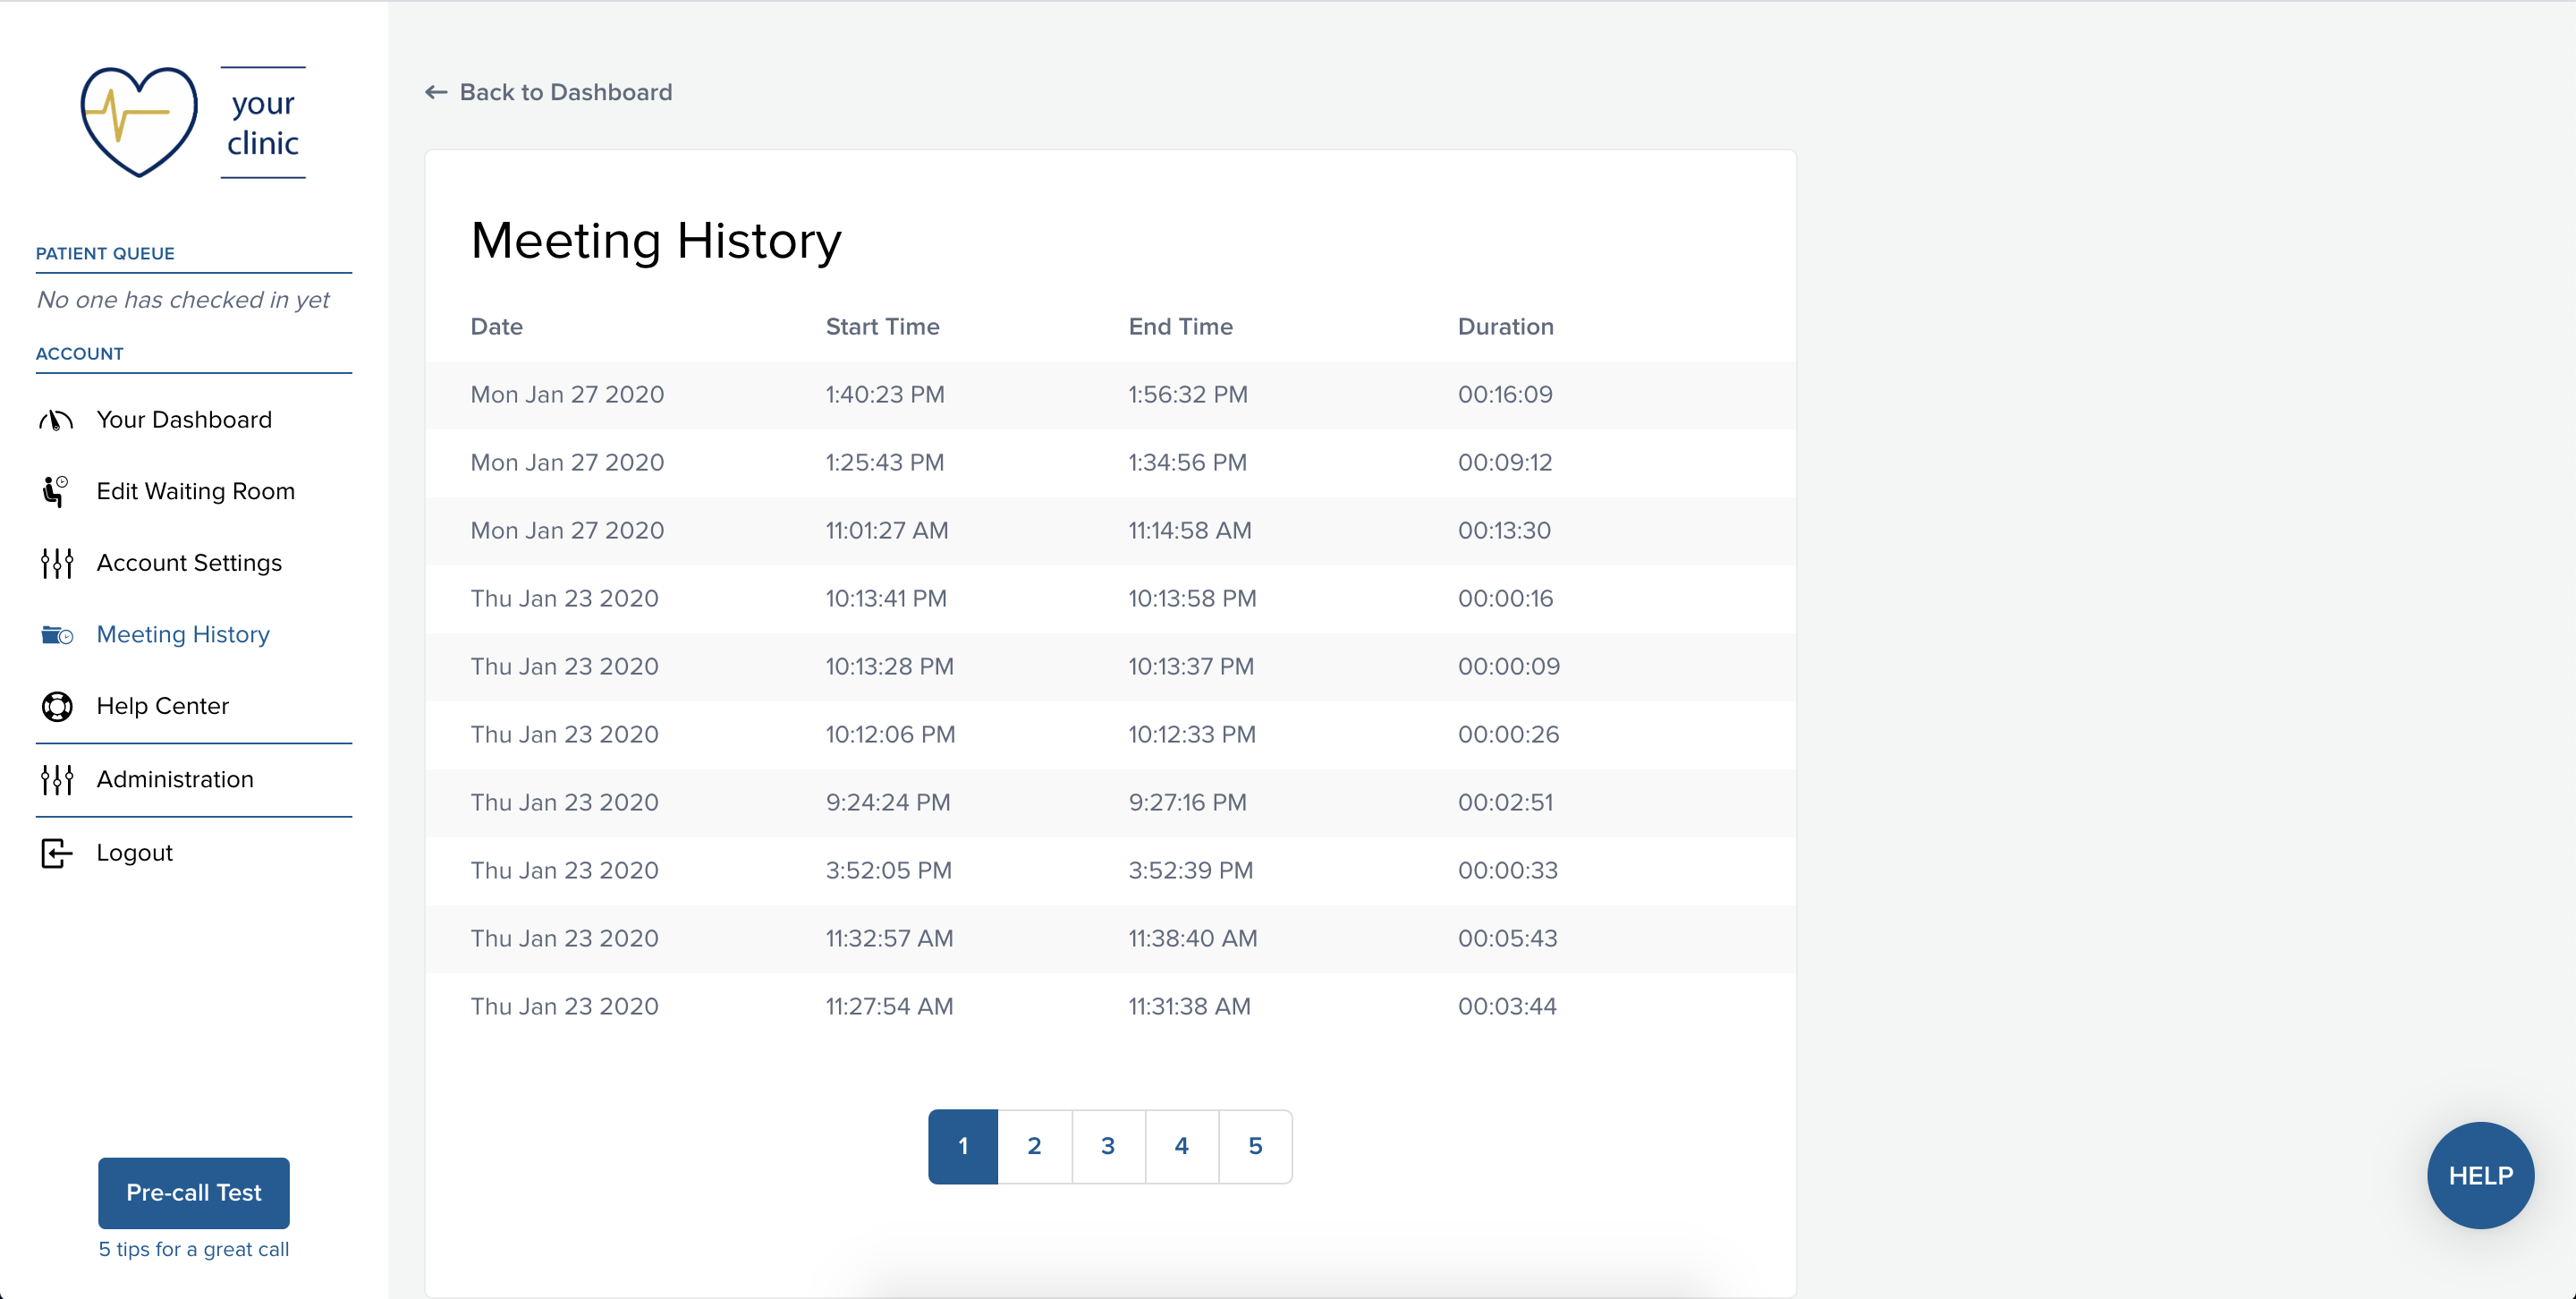 The columns of data on the Meeting History page